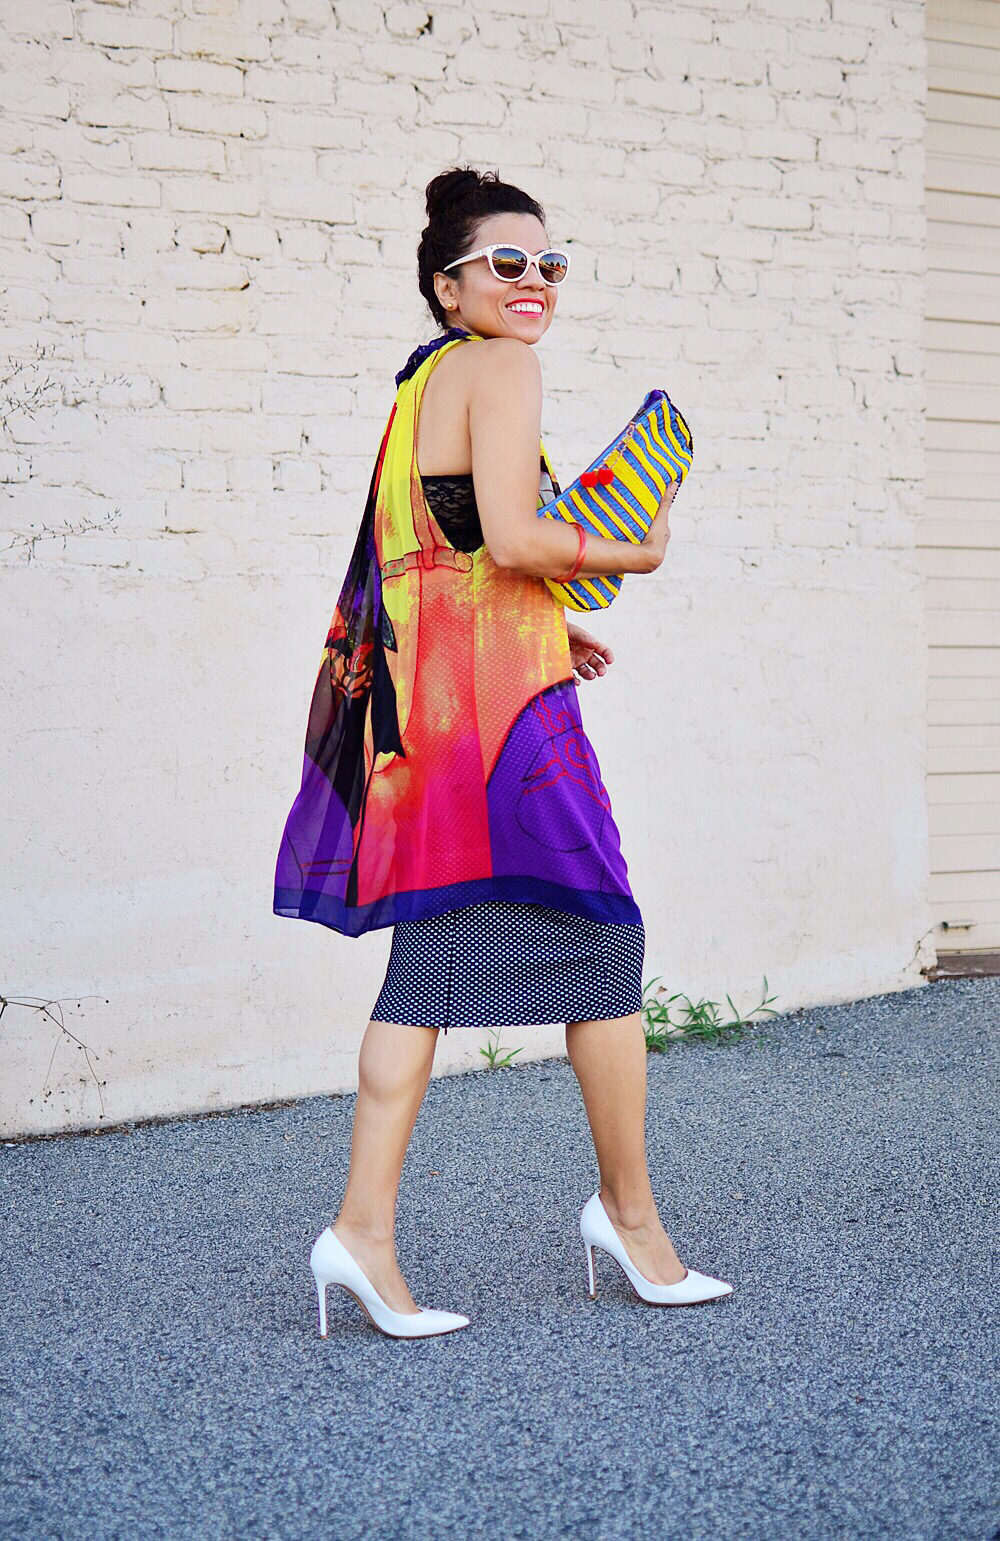 Summer colorful outfit street style